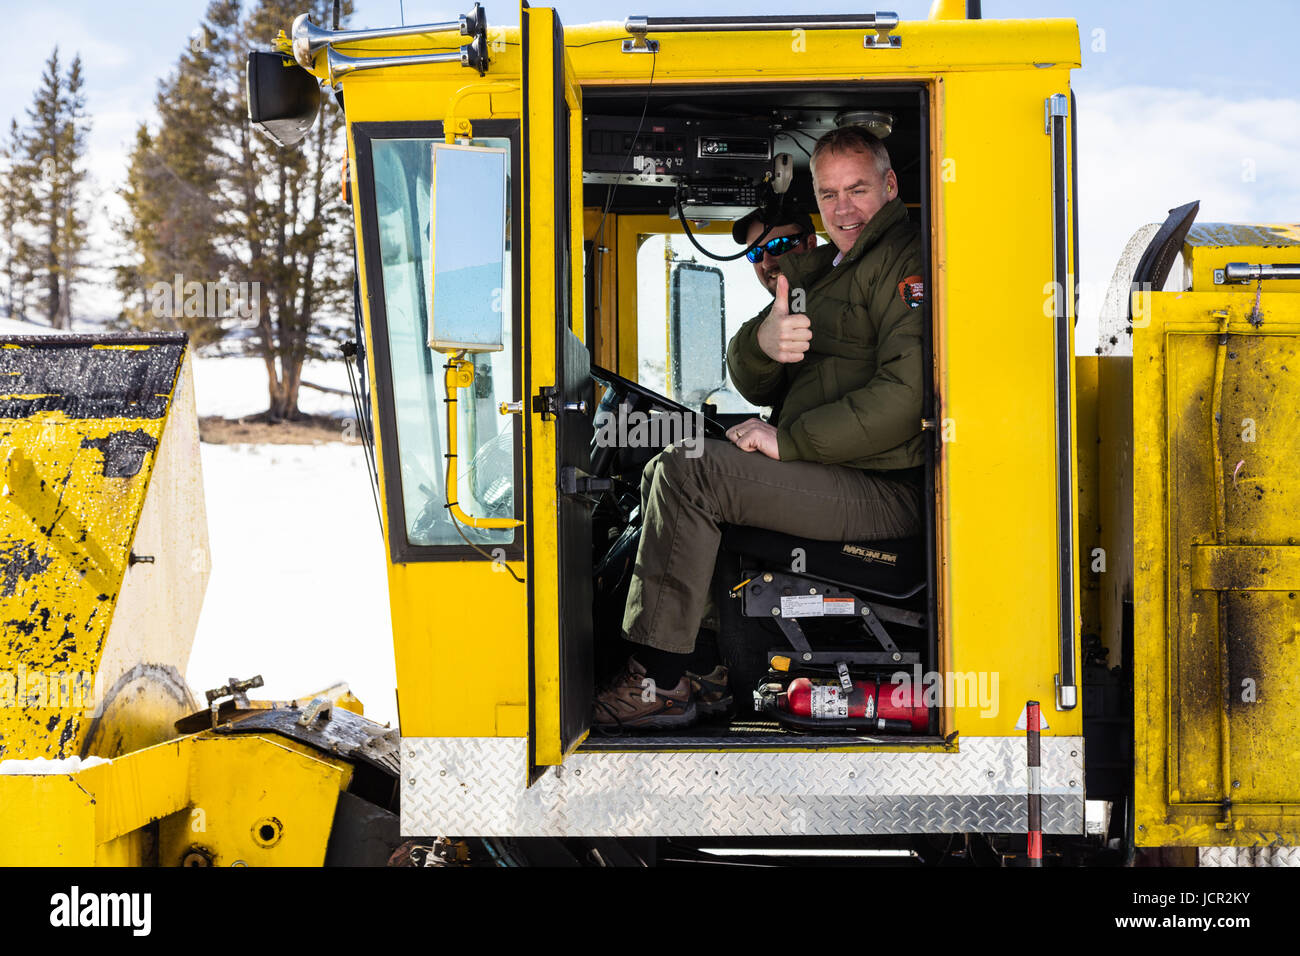 U.S. Interior Secretary Ryan Zinke rides a snowblower during a visit to the Yellowstone National Park March 17, - Stock Image